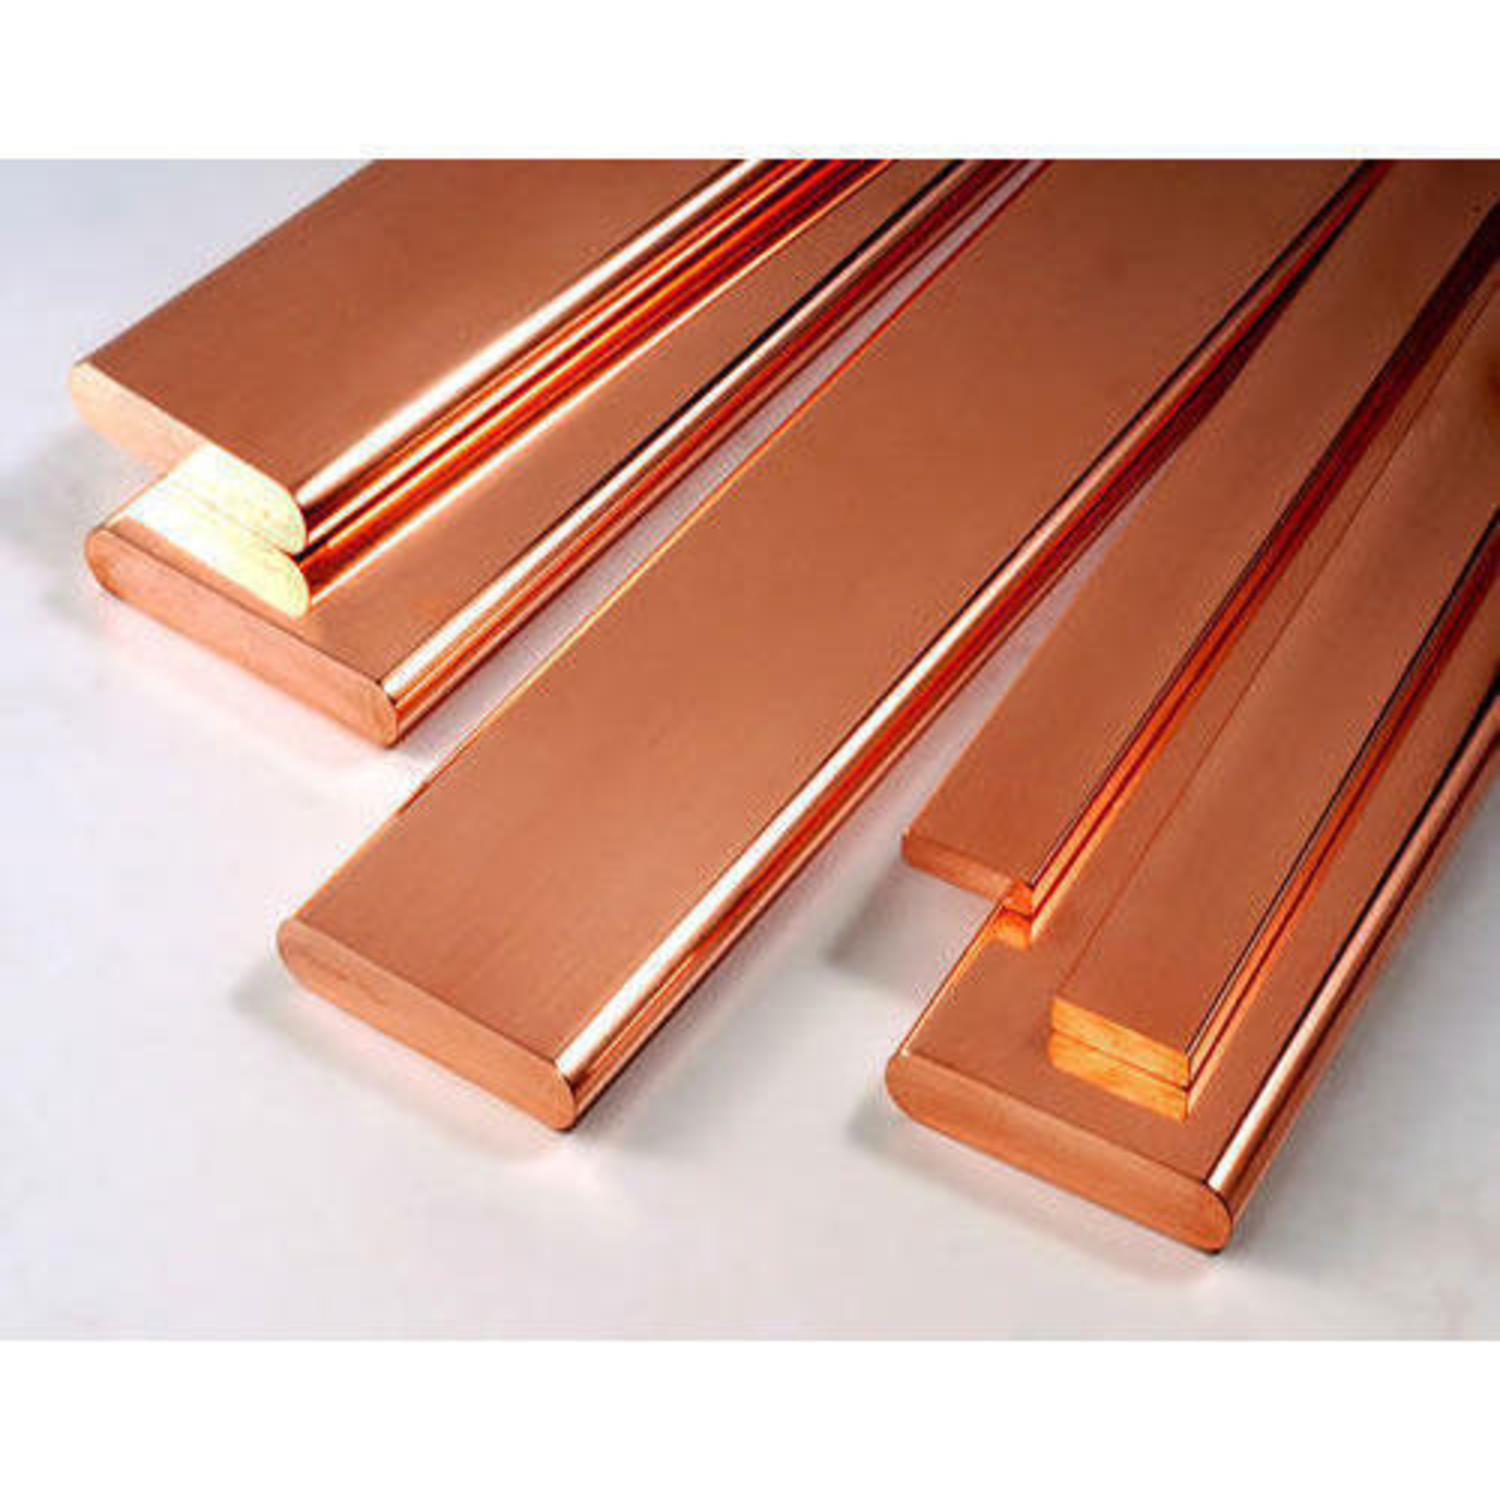 SOLID COPPER BUSBARS